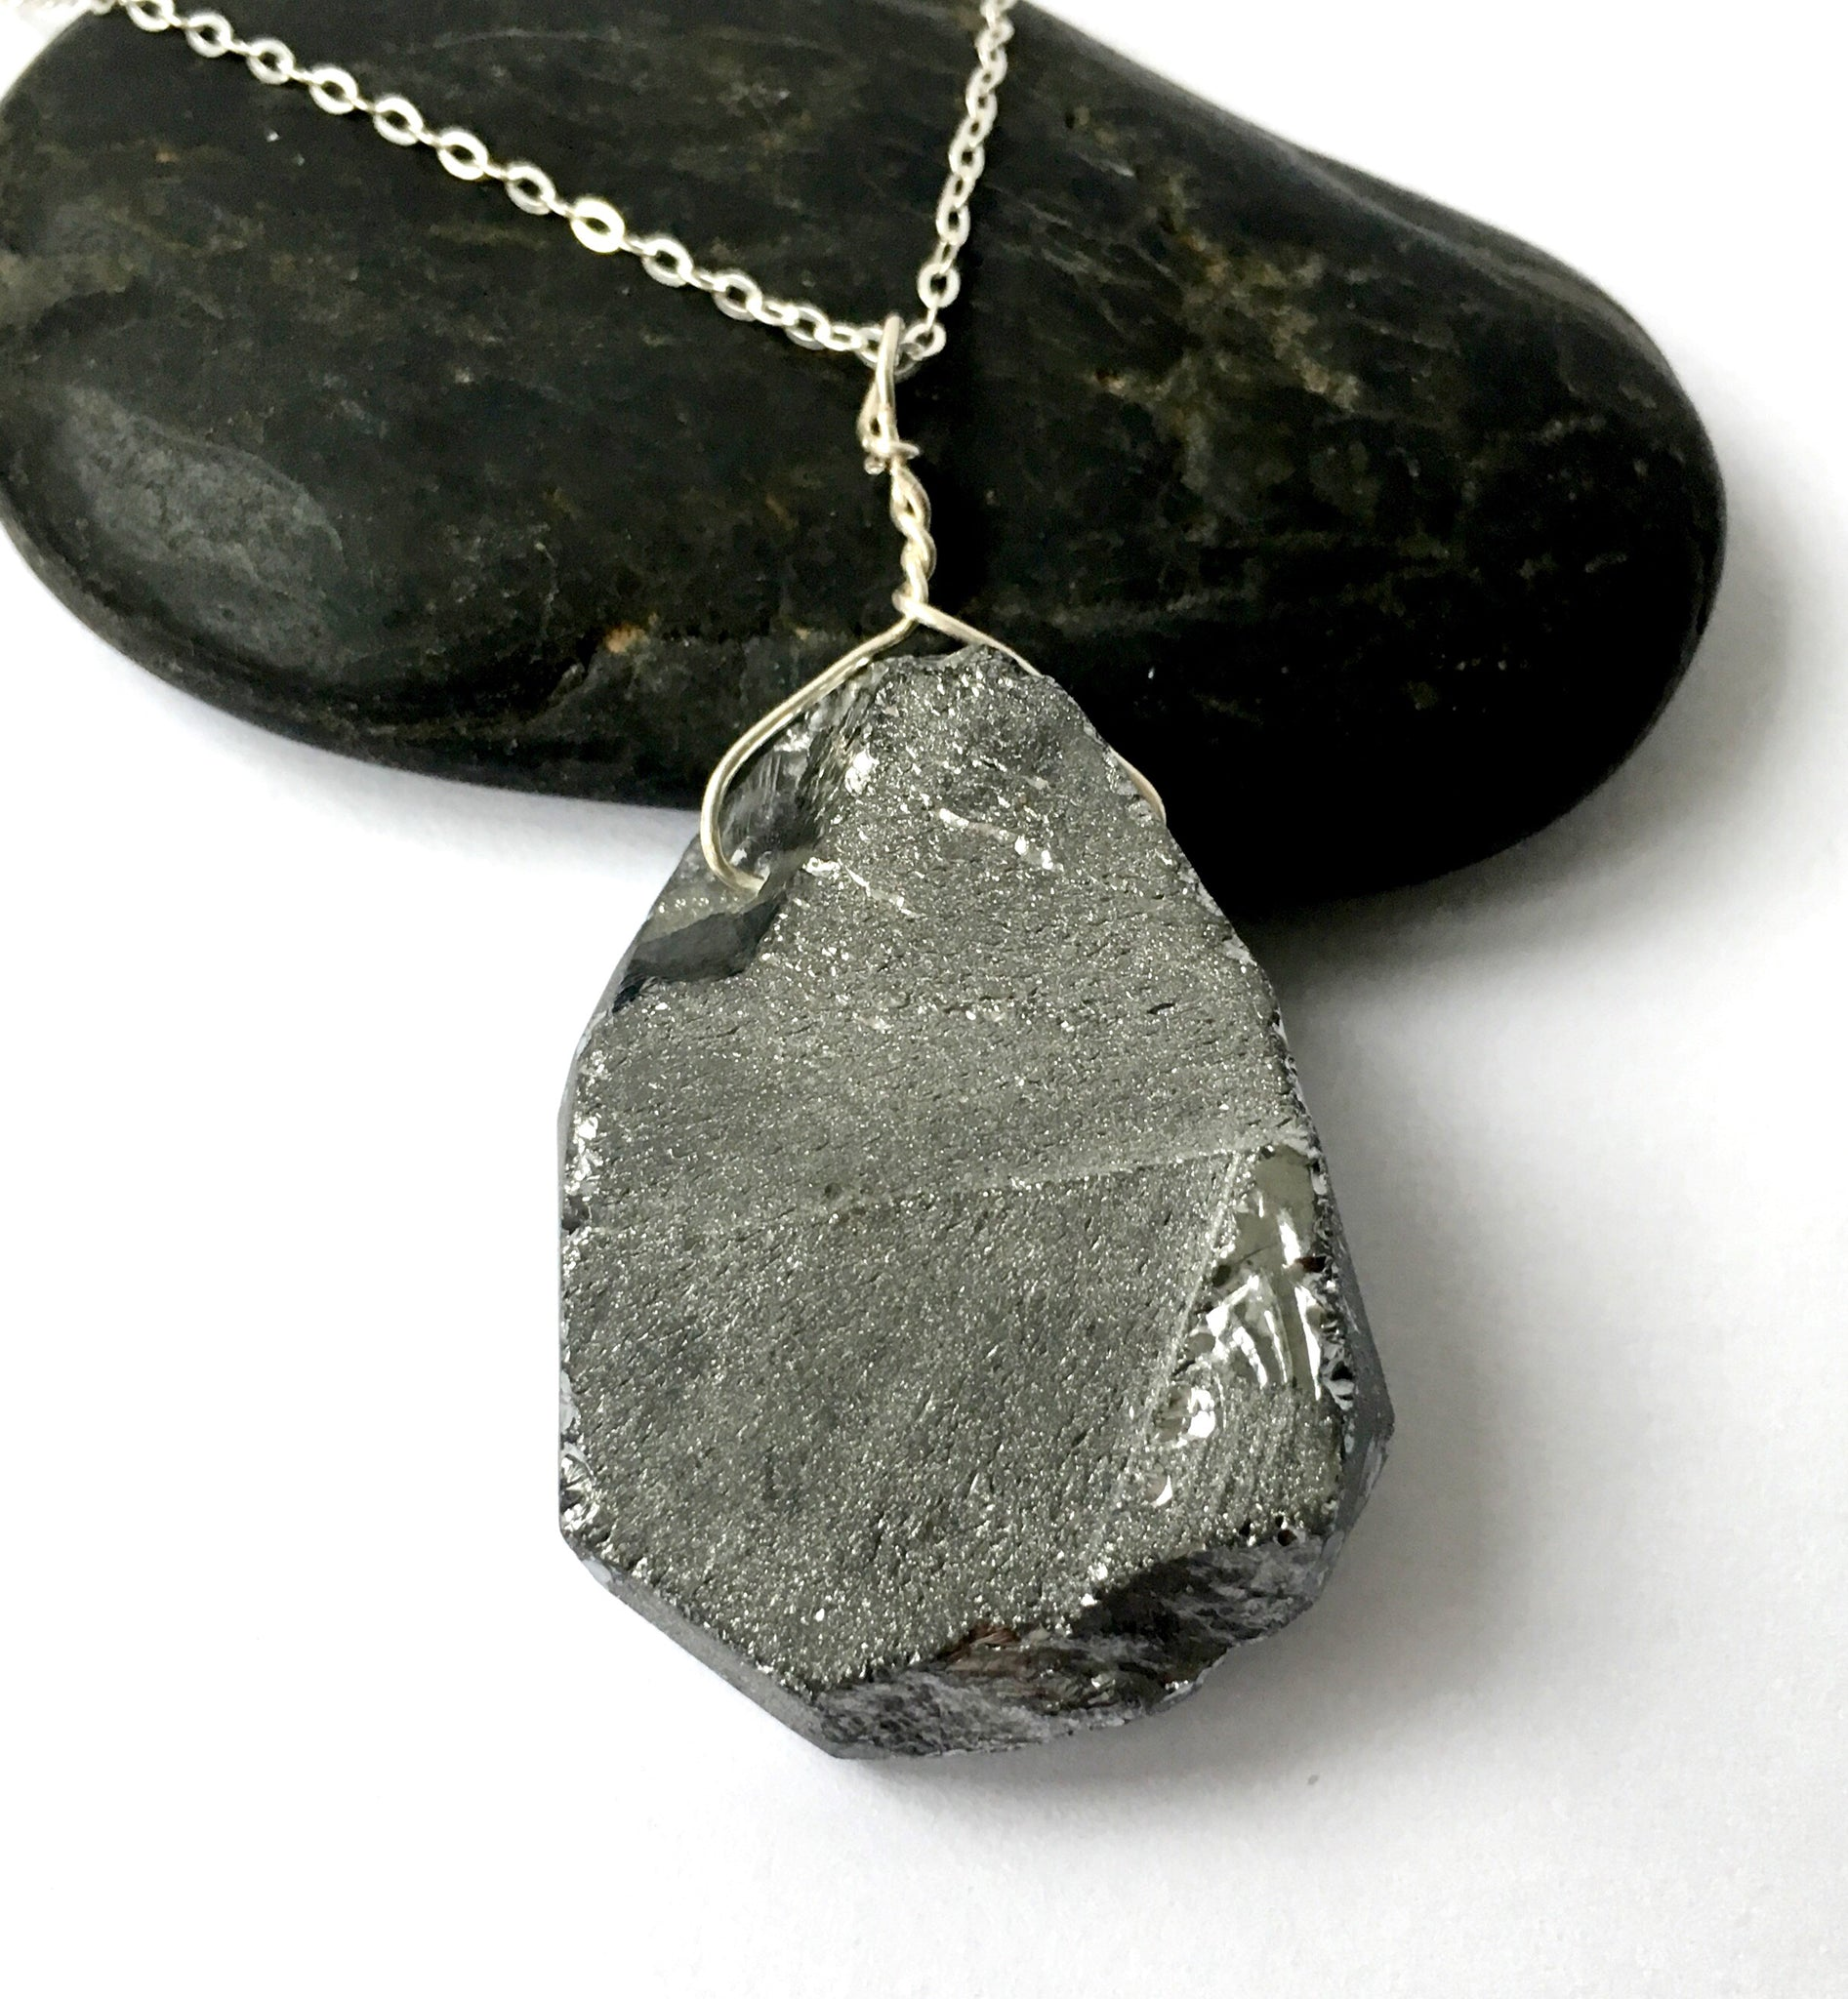 Silver Electroplated Quartz Sterling Silver Pendant Necklace - Glitter and Gem Jewellery